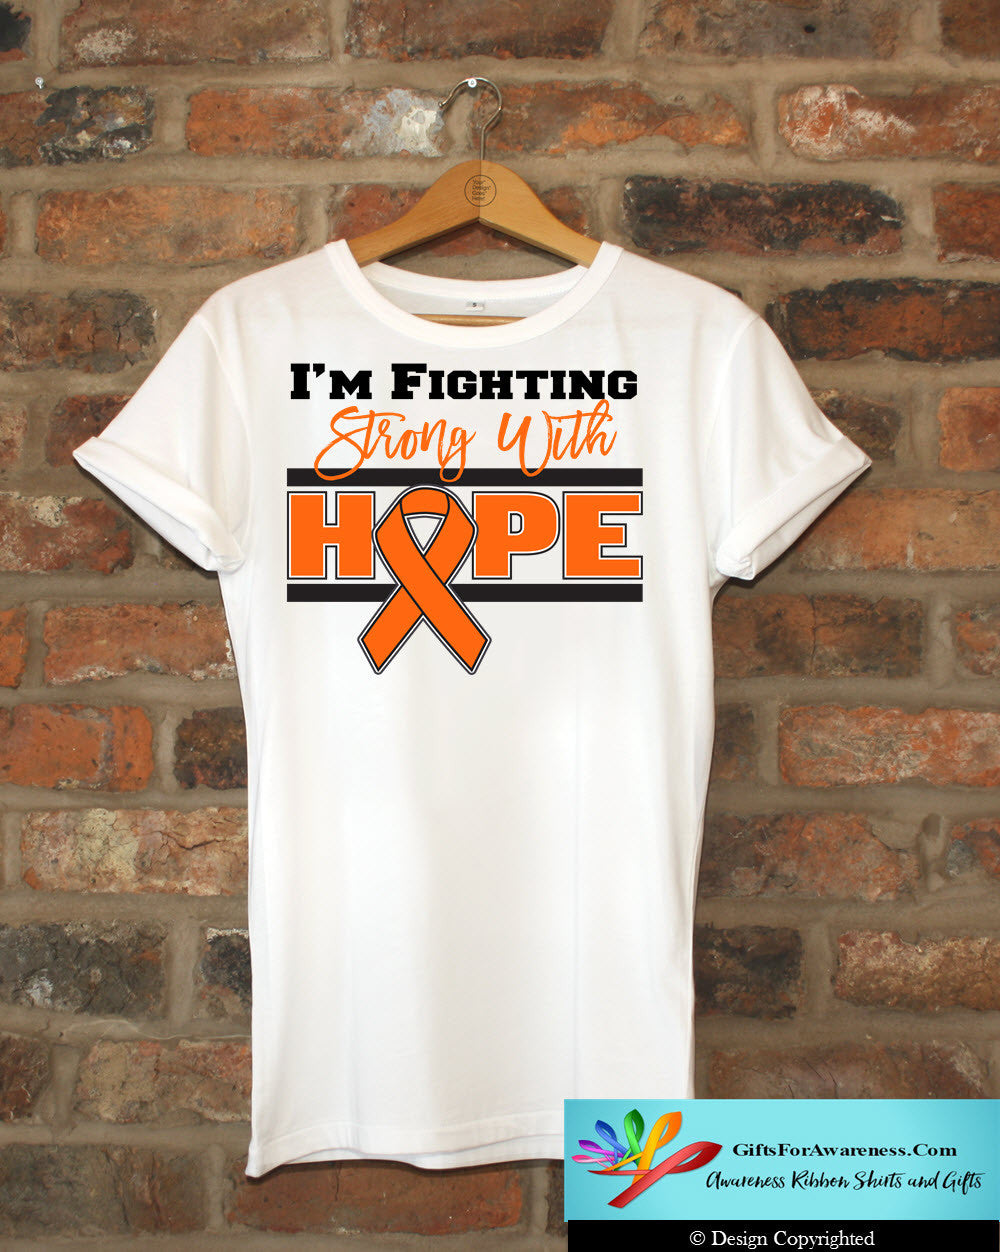 Leukemia I'm Fighting Strong With Hope Shirts - GiftsForAwareness